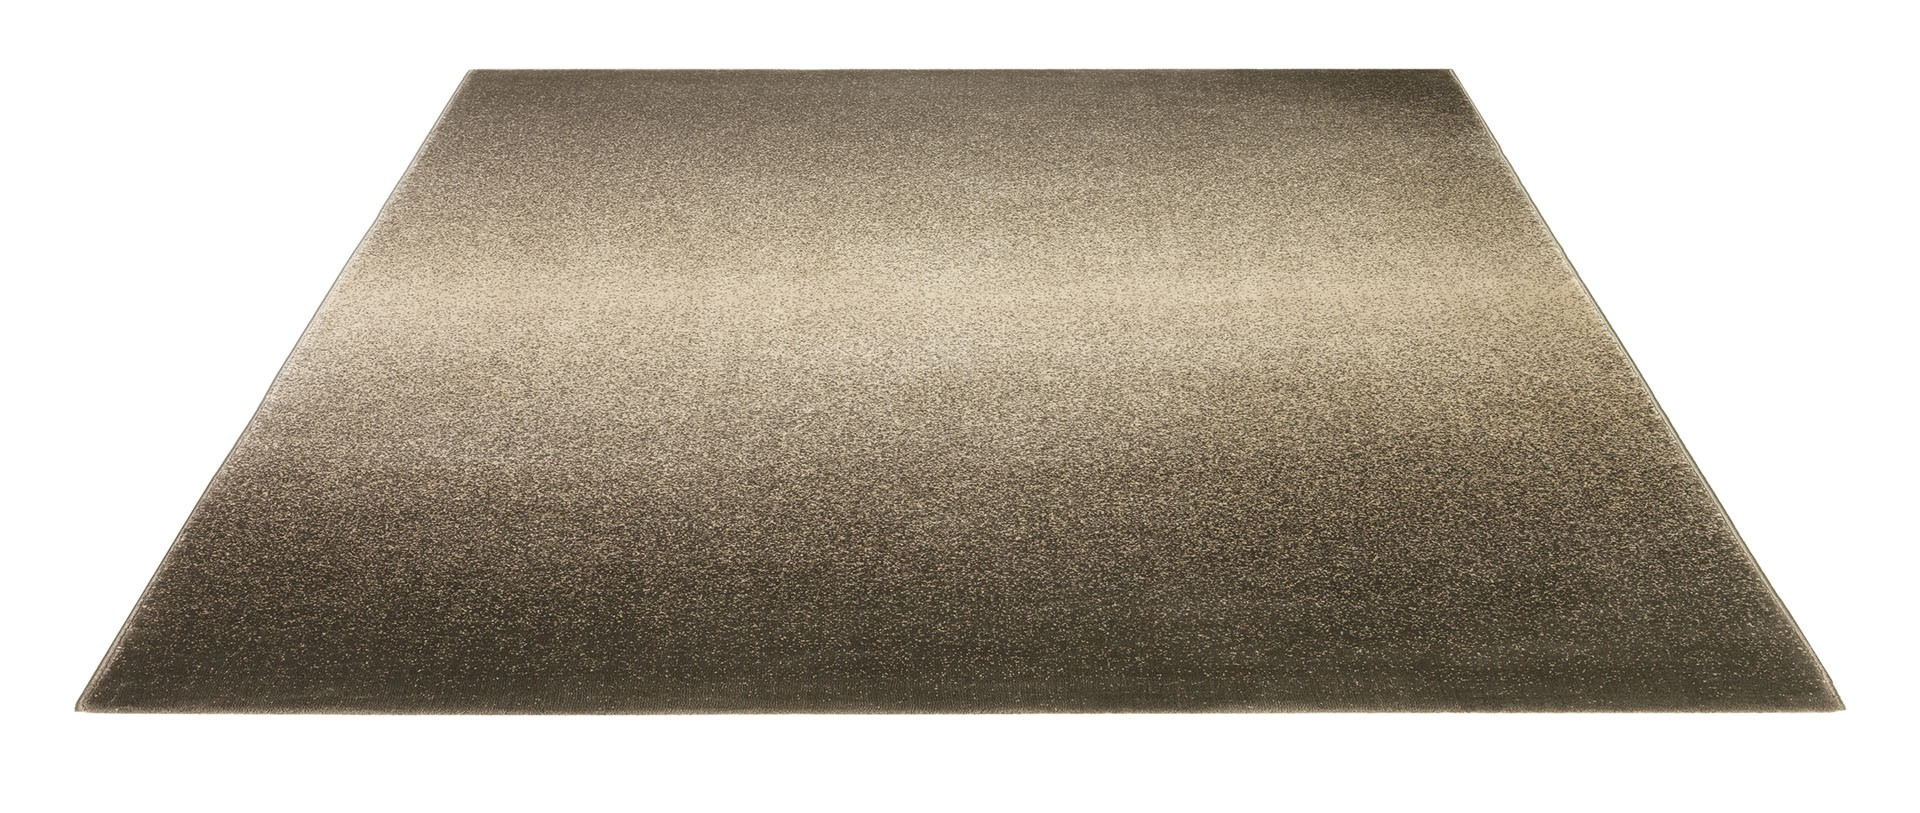 Tapis de salon gris richmond par esprit home - Tapis salon gris ...